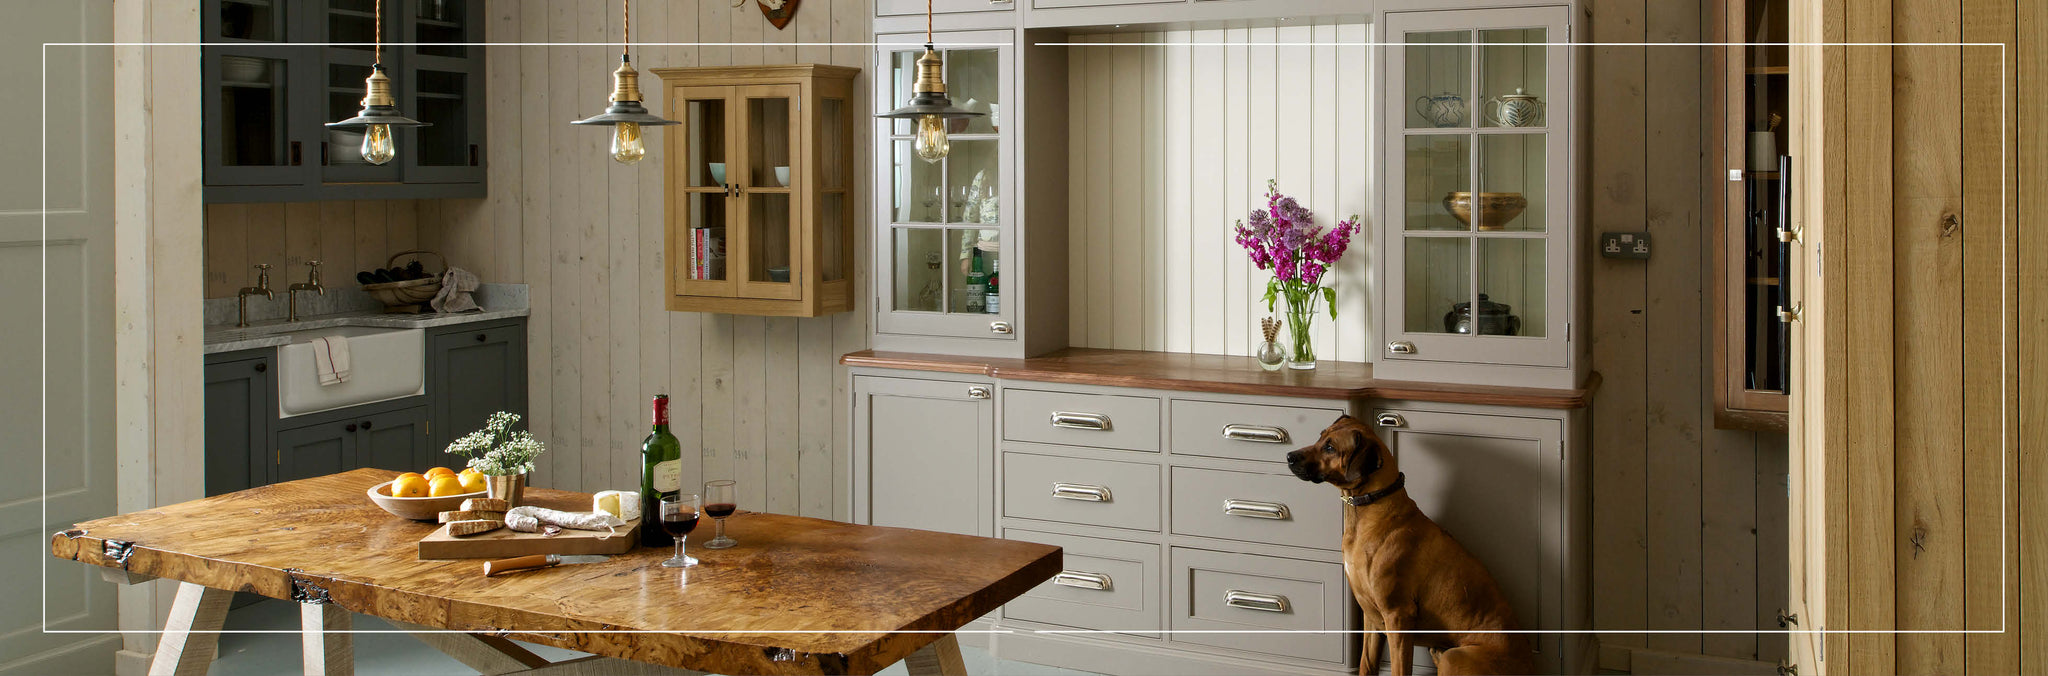 Lighting Design Ideas For Any Traditional, Country Or Cottage Kitchen